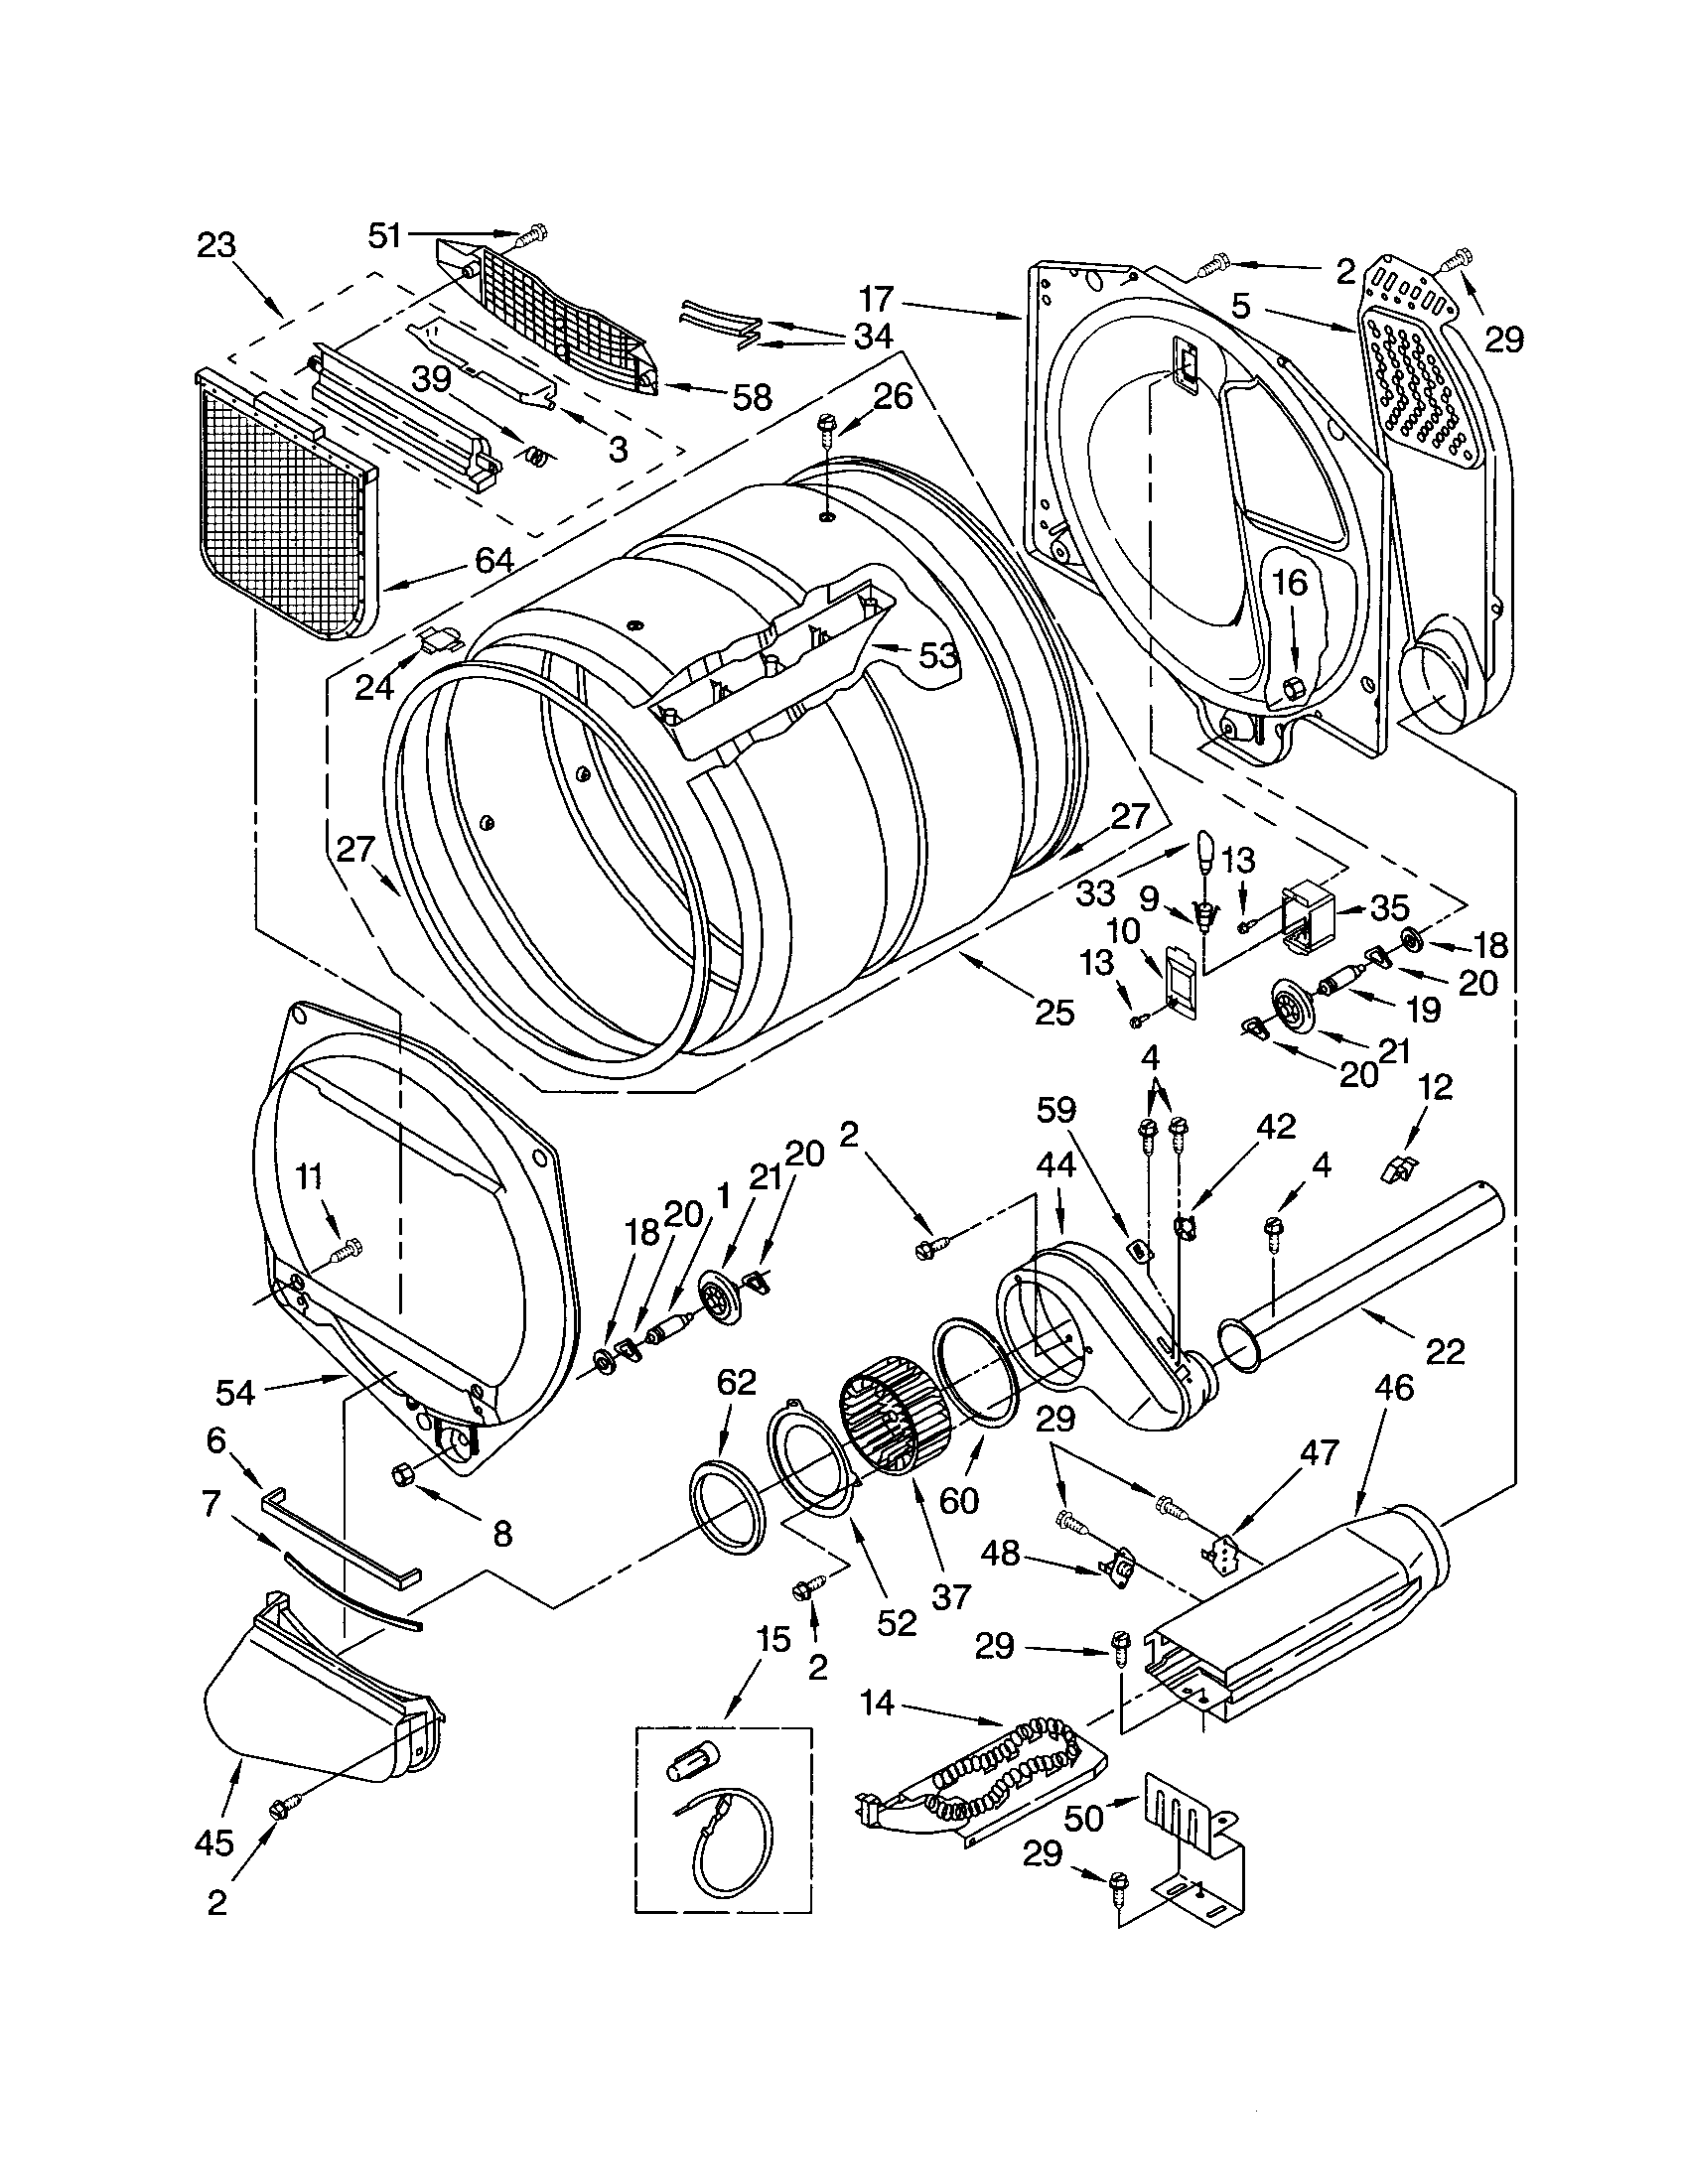 Kenmore Elite Dryer Manual Troubleshooting